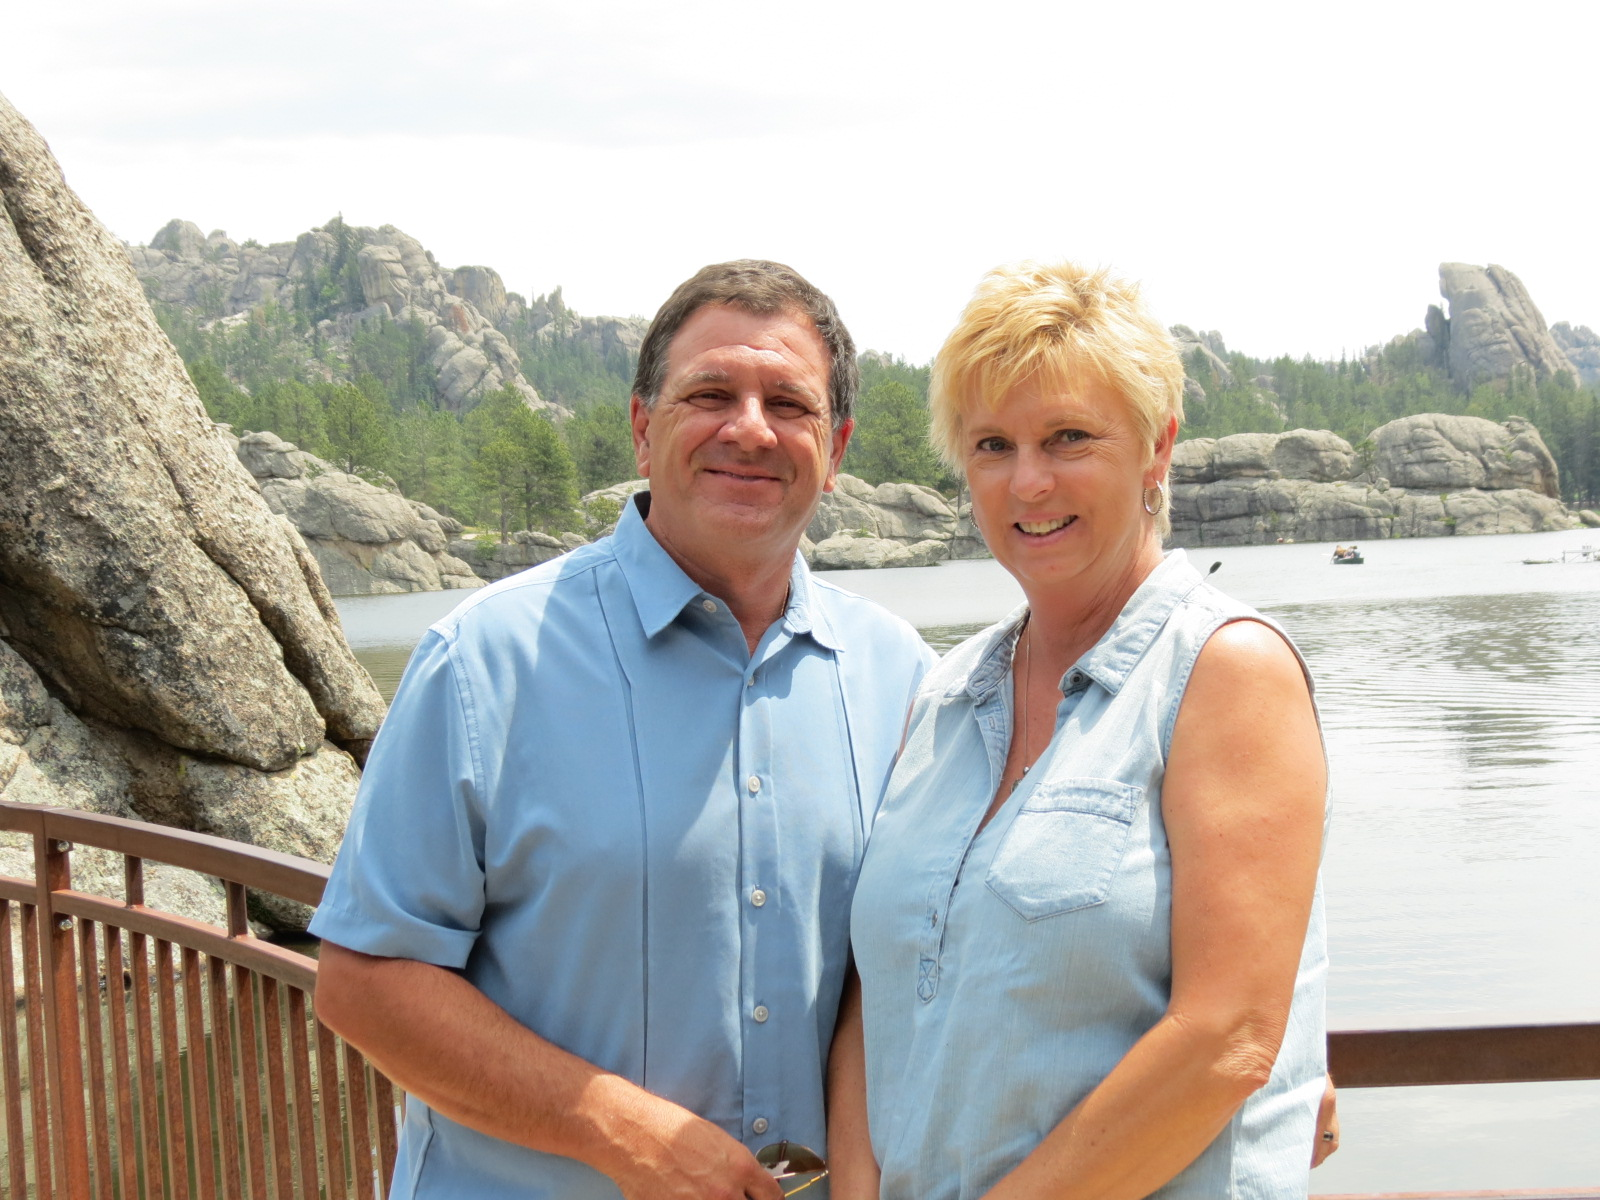 Lee & Carol at Sylvan Lake, In the Black Hills, SD